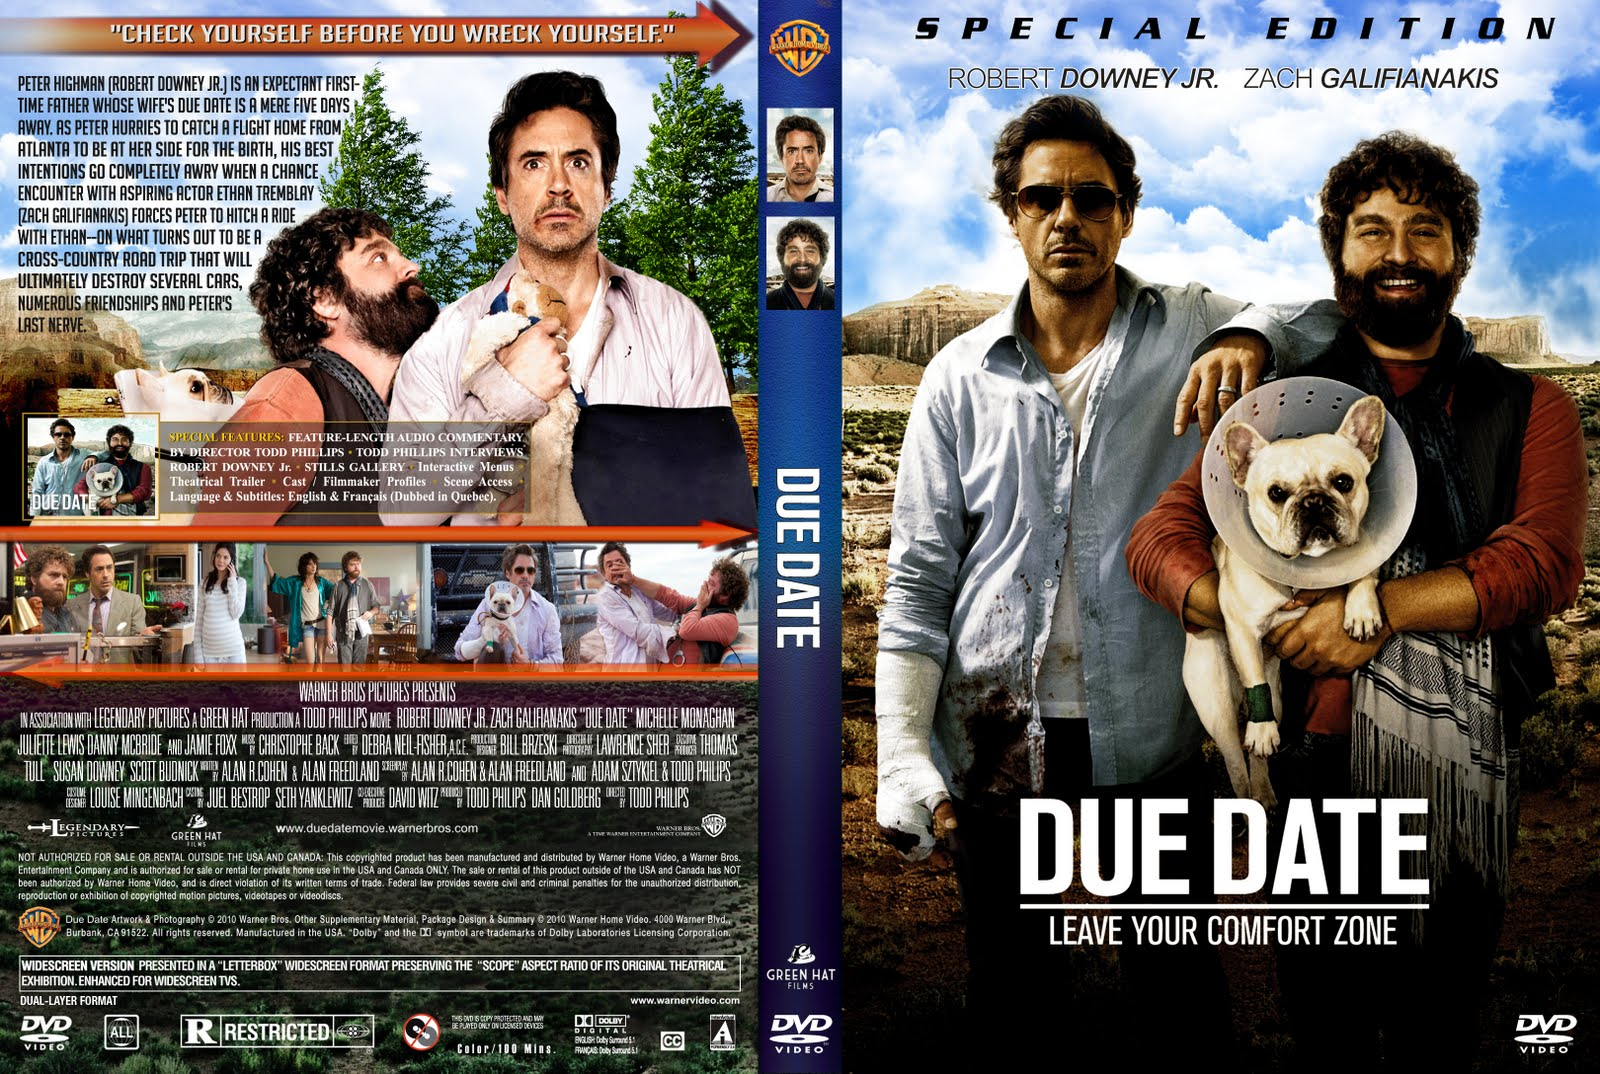 free date due date movie